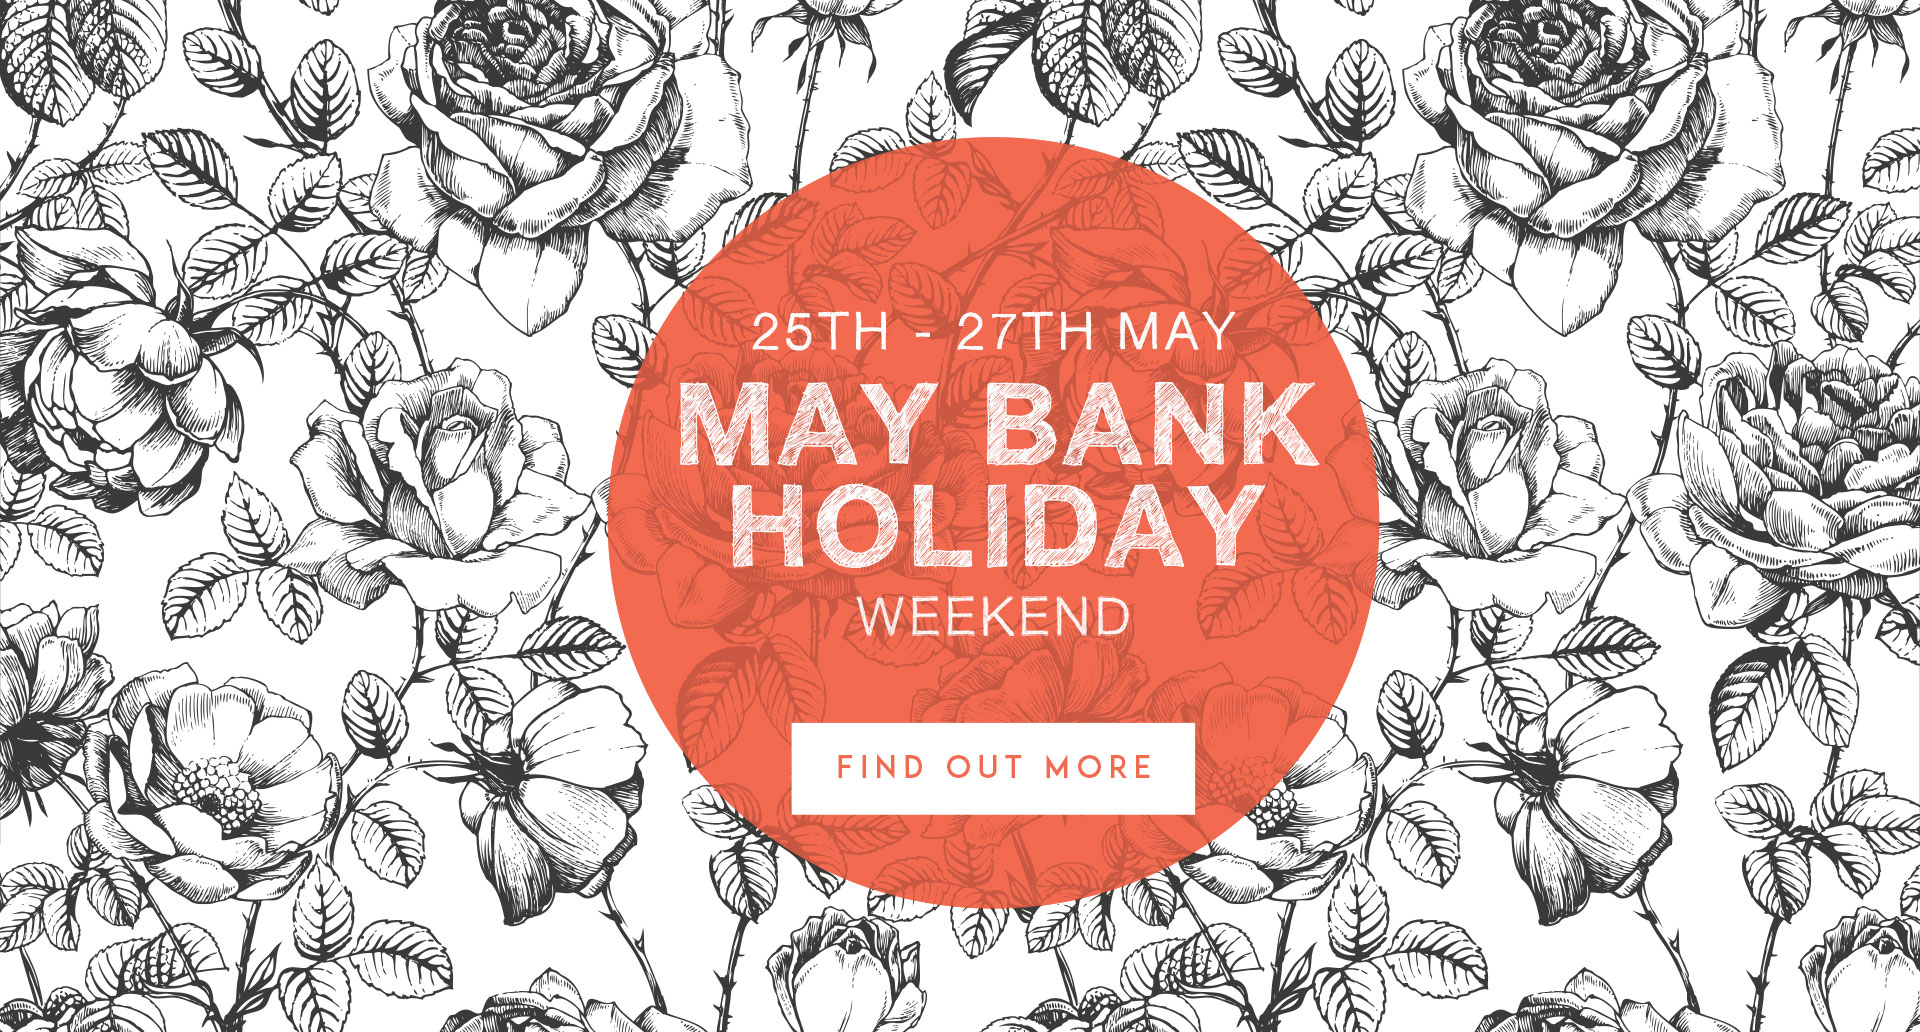 May Bank Holiday at The Queen's Arms